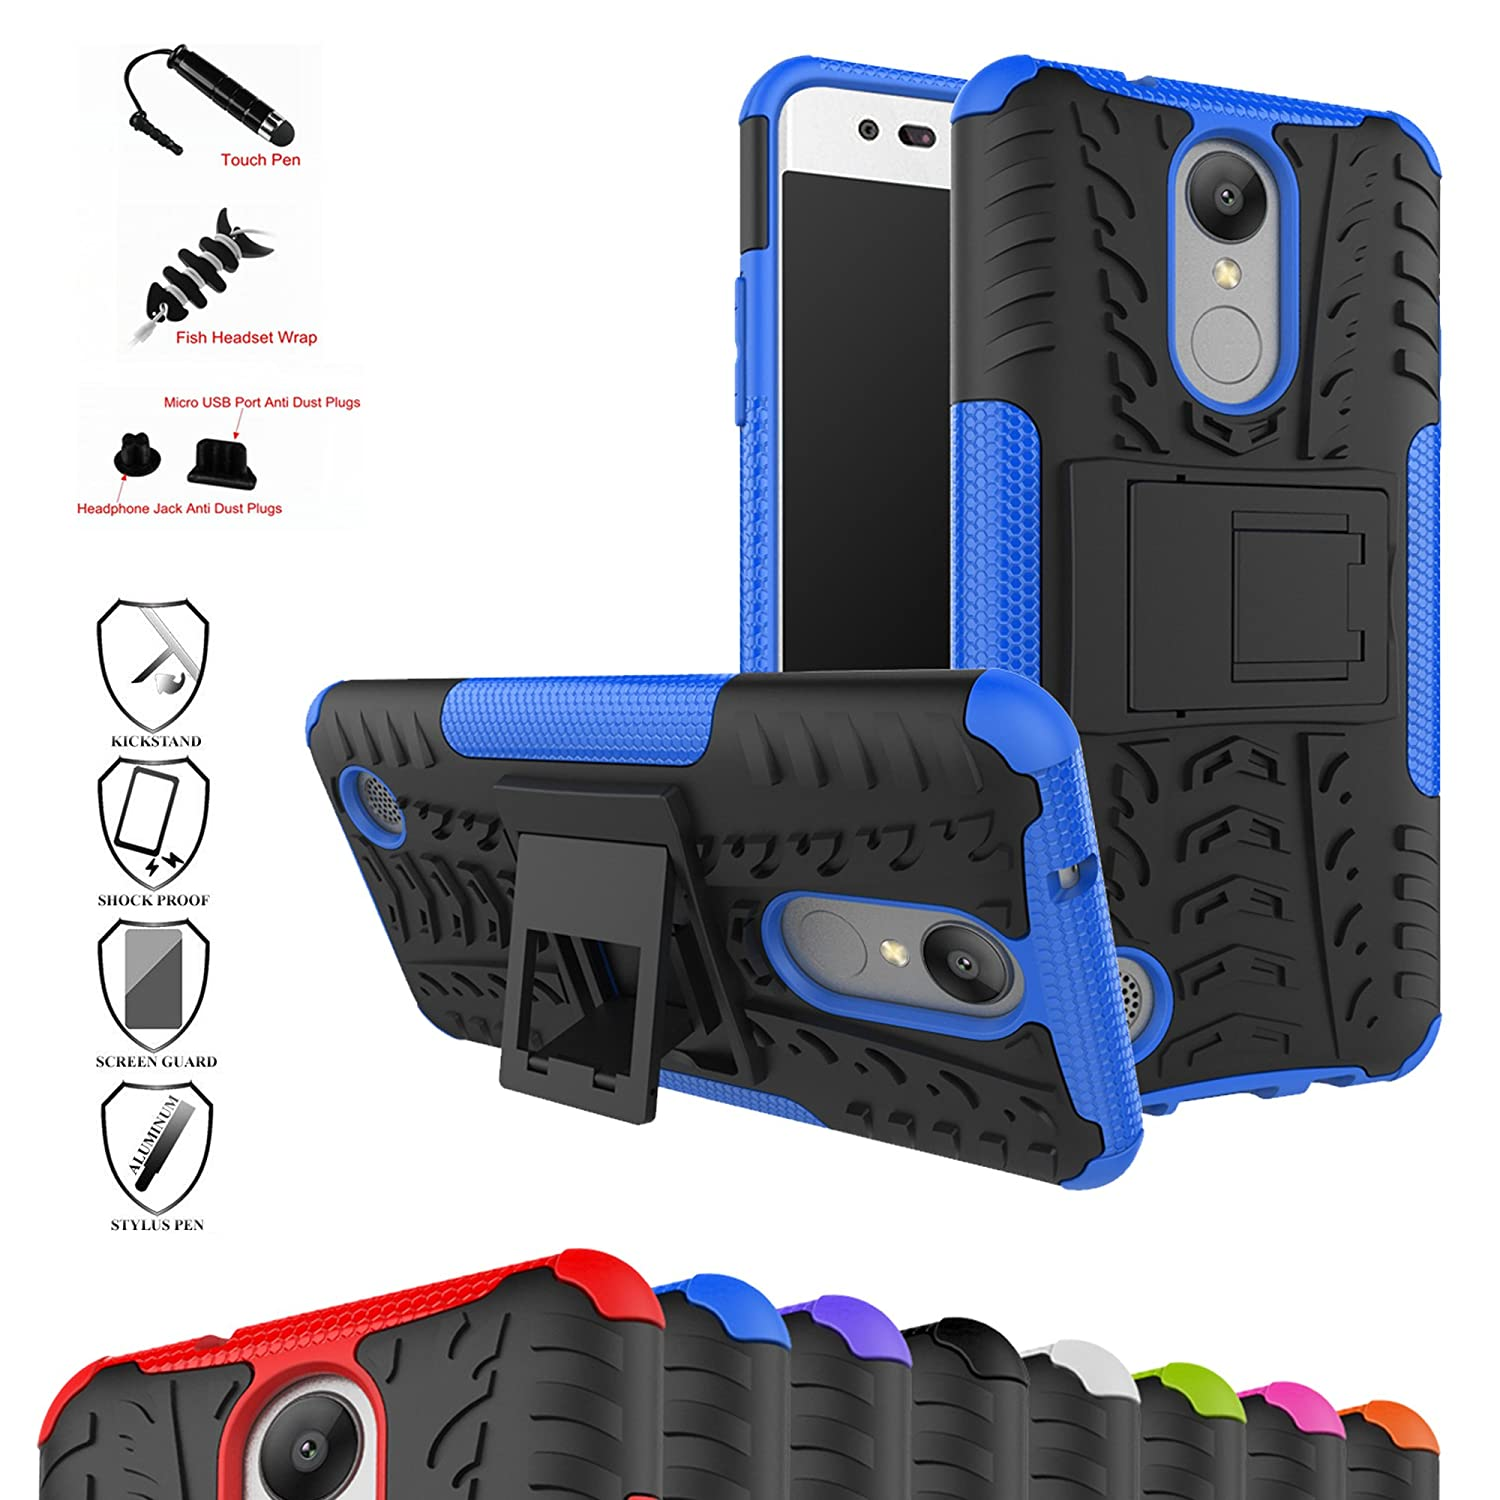 ,Blue with 4 in 1 Packaged OnePlus 5T Case,Mama Mouth Shockproof Heavy Duty Combo Hybrid Rugged Dual Layer Grip Cover with Kickstand for OnePlus 5T